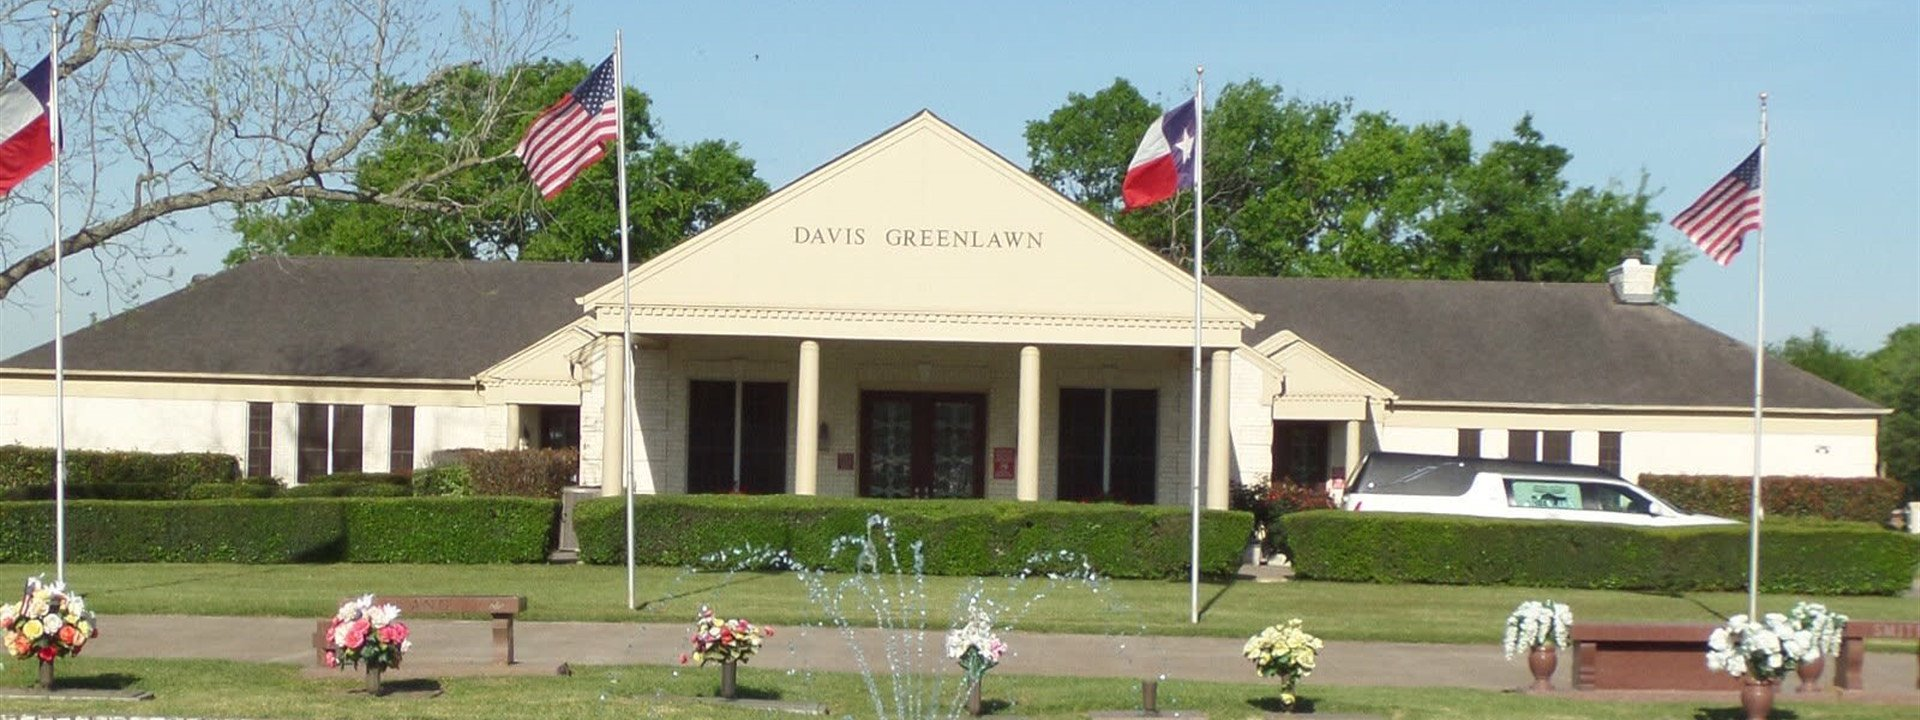 About Us | Davis Greenlawn Funeral Chapel and Cemeteries